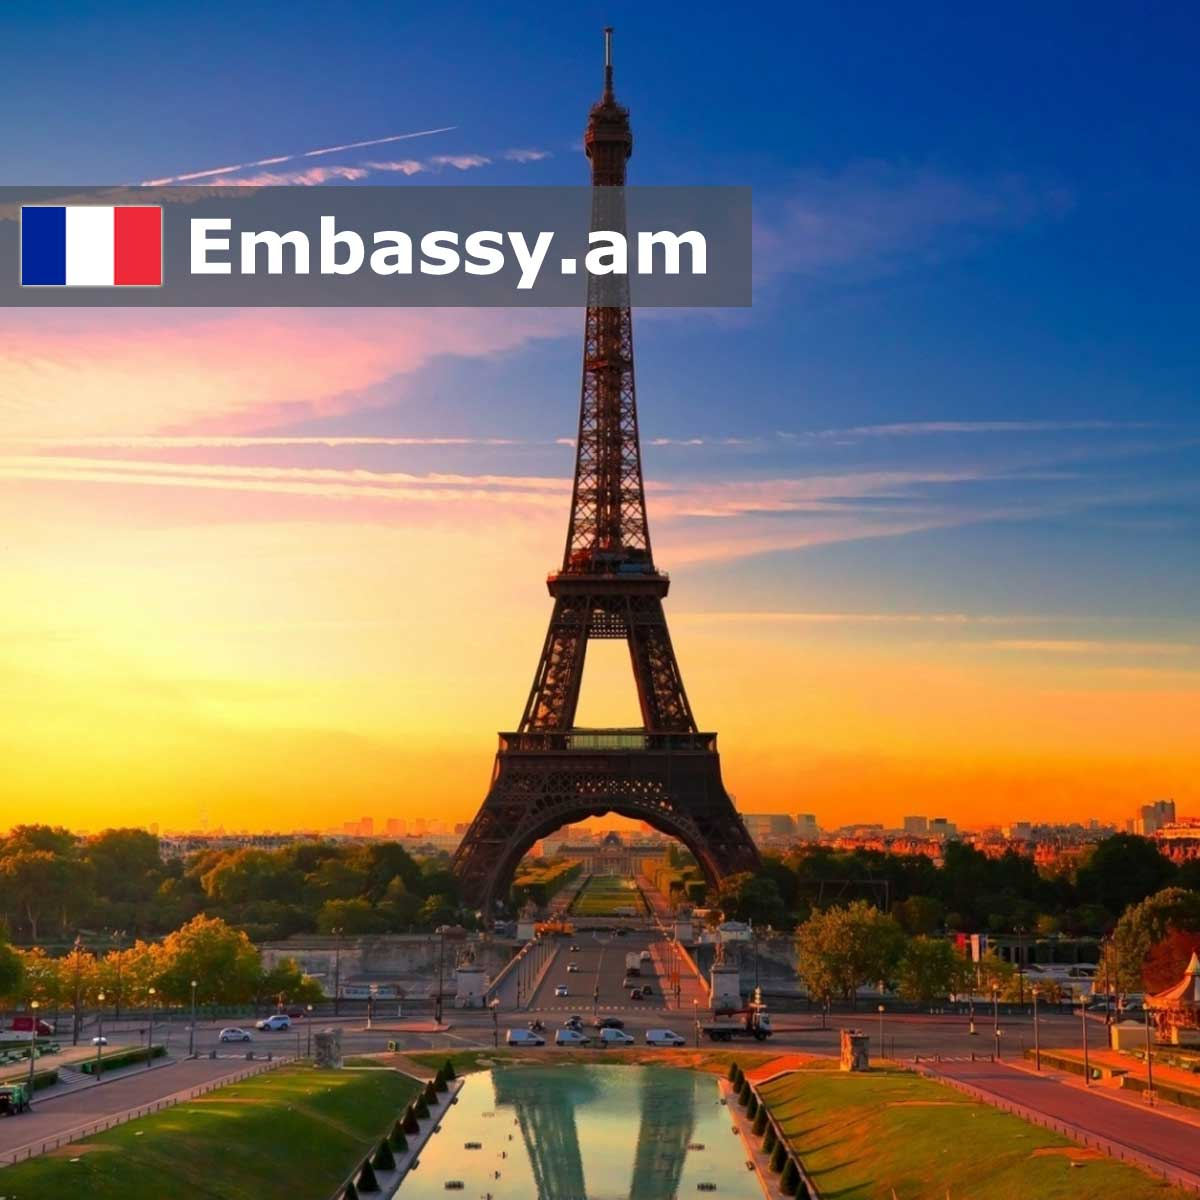 Hotels in France - Embassy.am